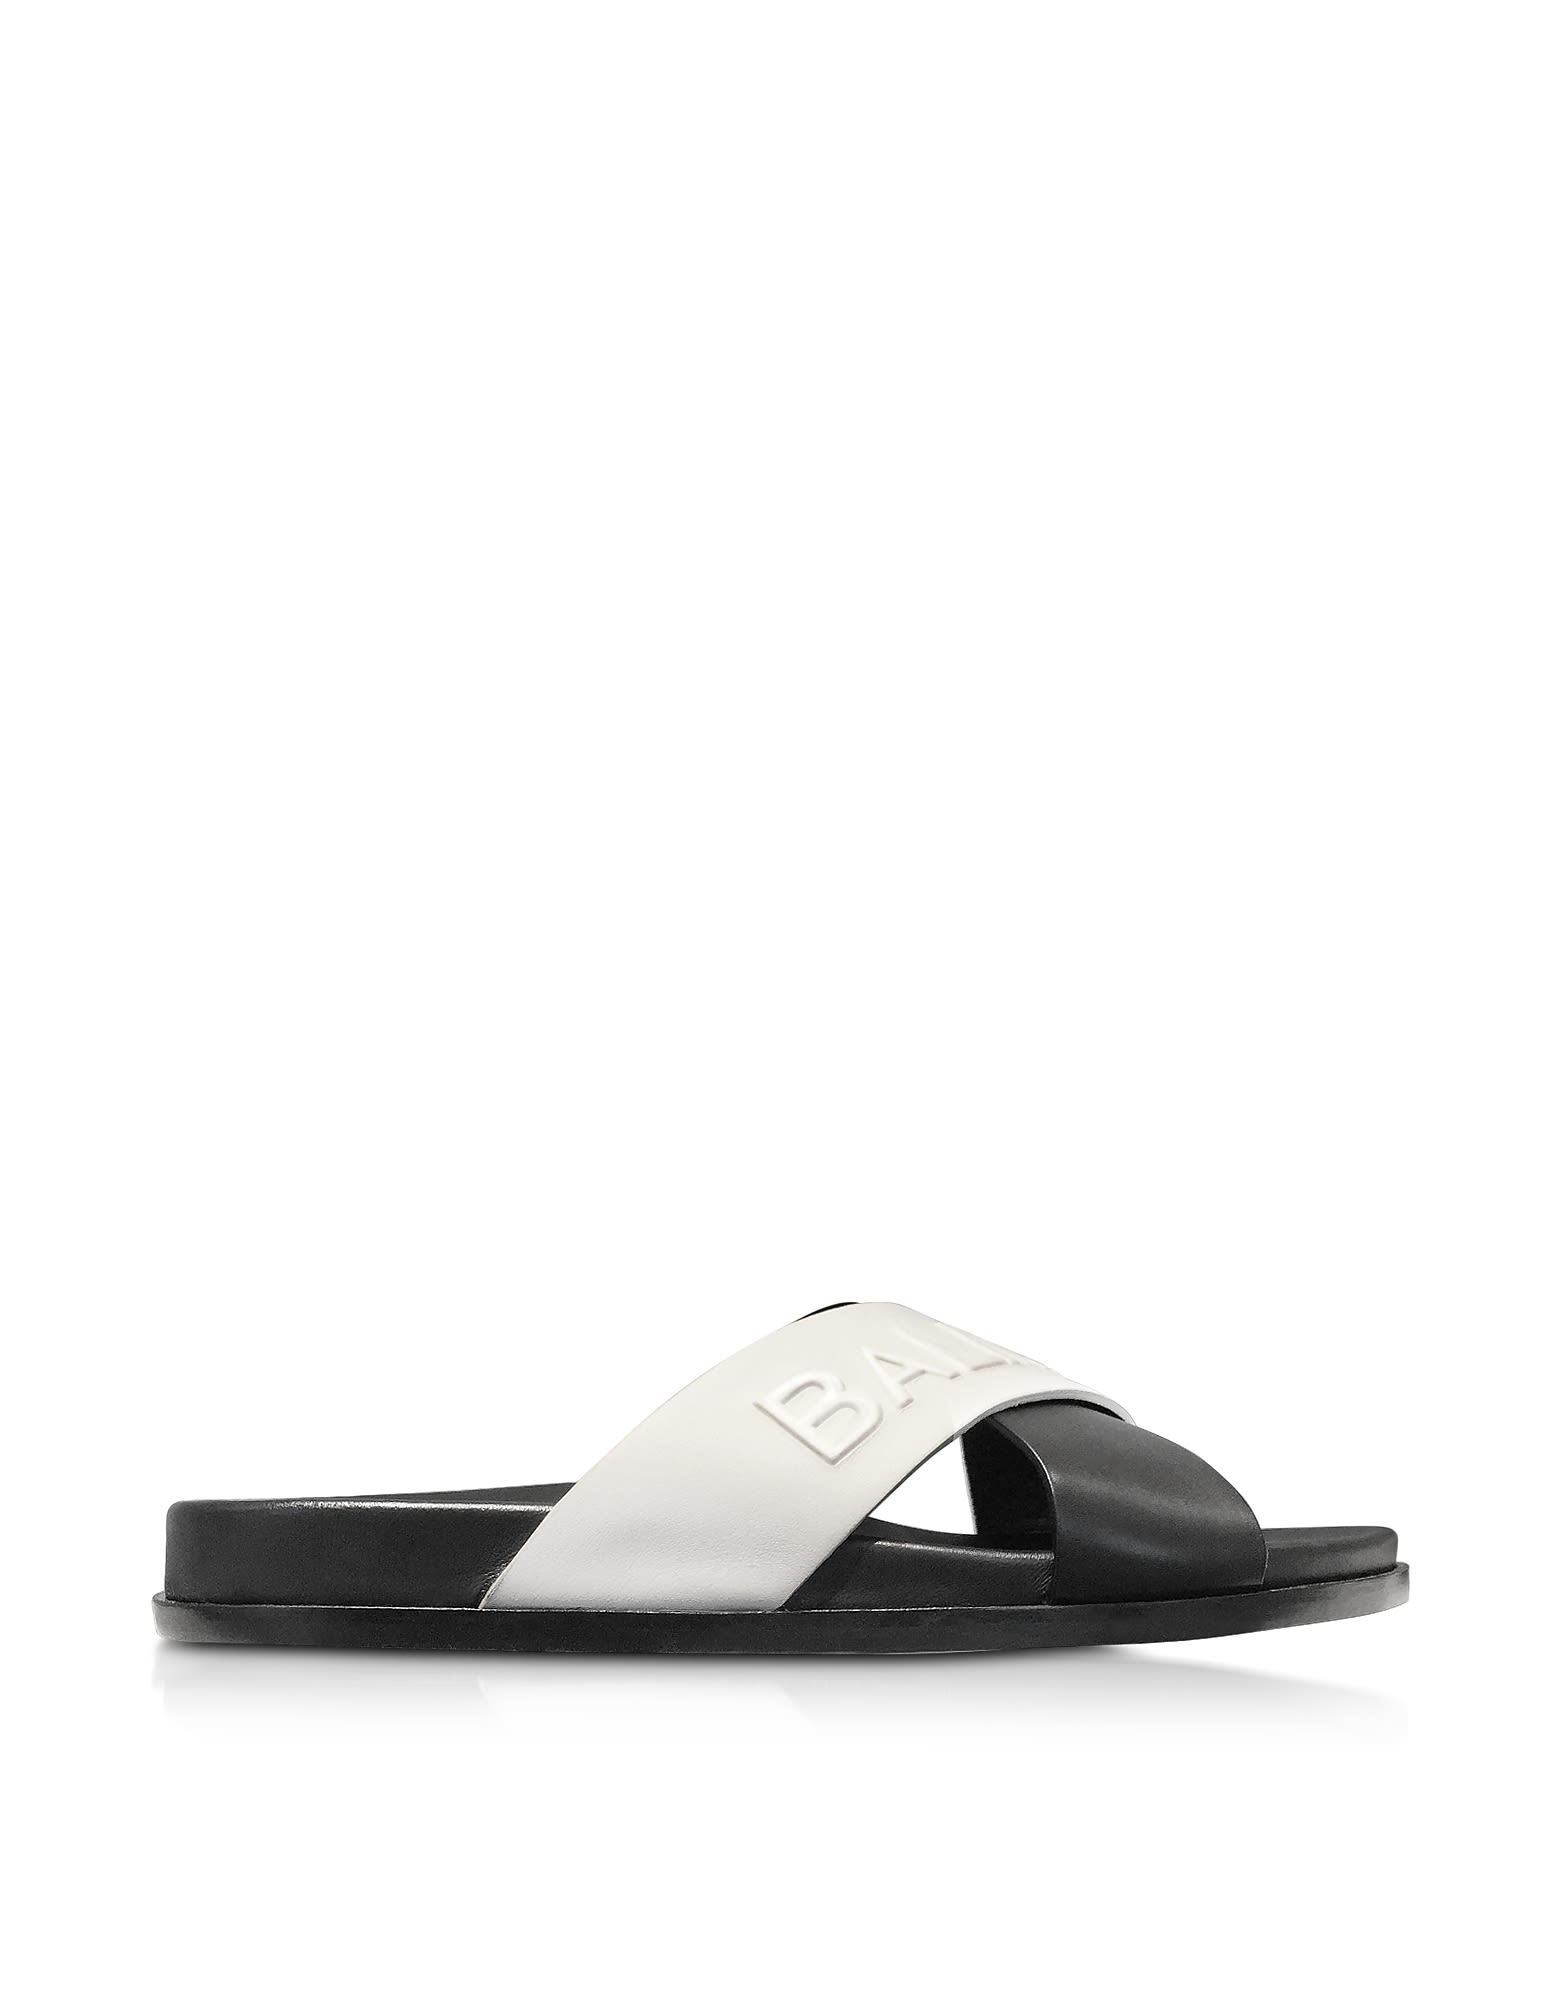 Balmain Black & white Leather Criss Cross Women's Slide Sandals